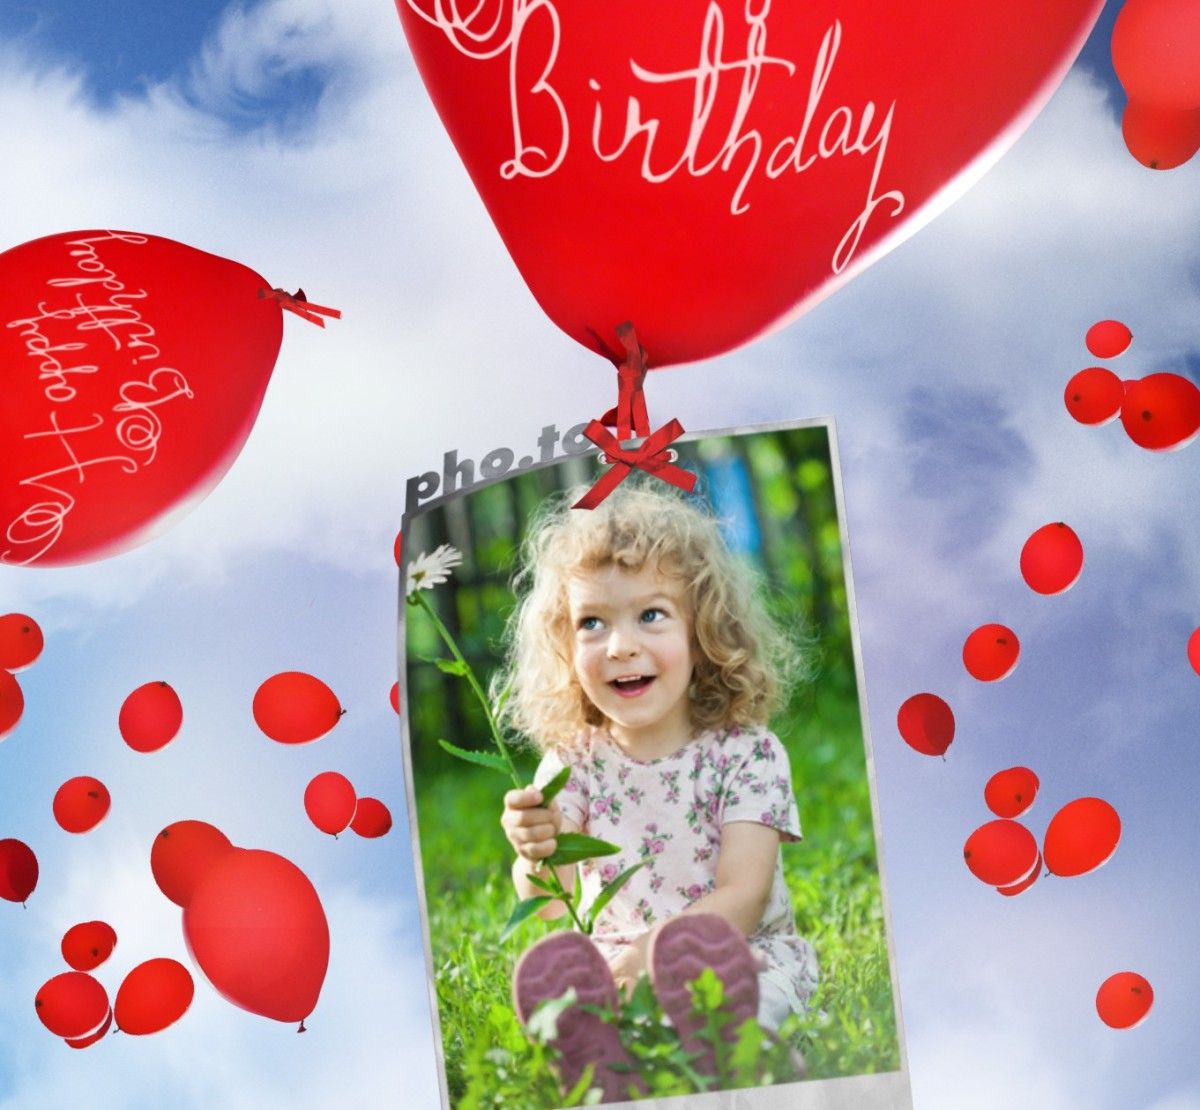 birthday wishes online photo editing ; birthday_ecard_with_balloons